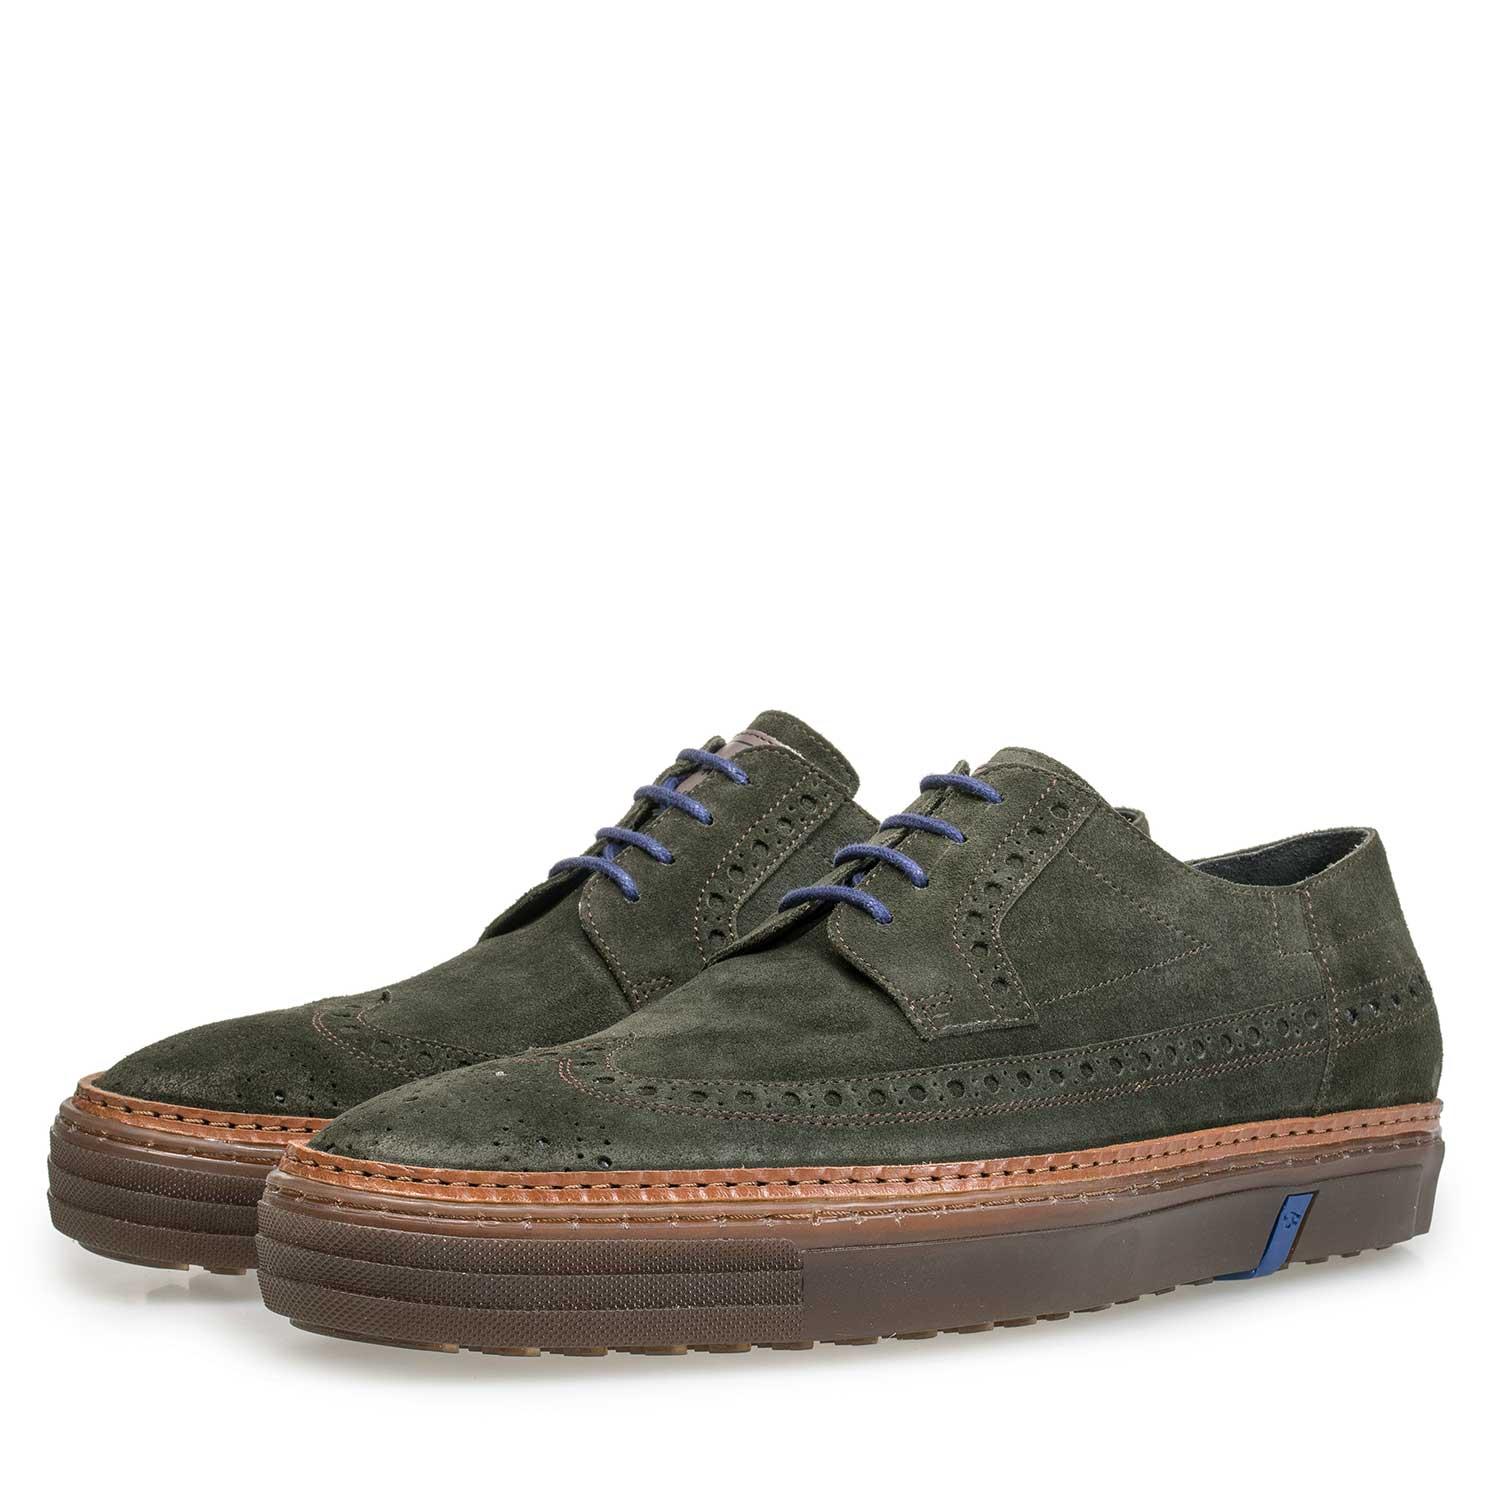 17092/02 - Green suede leather lace shoe